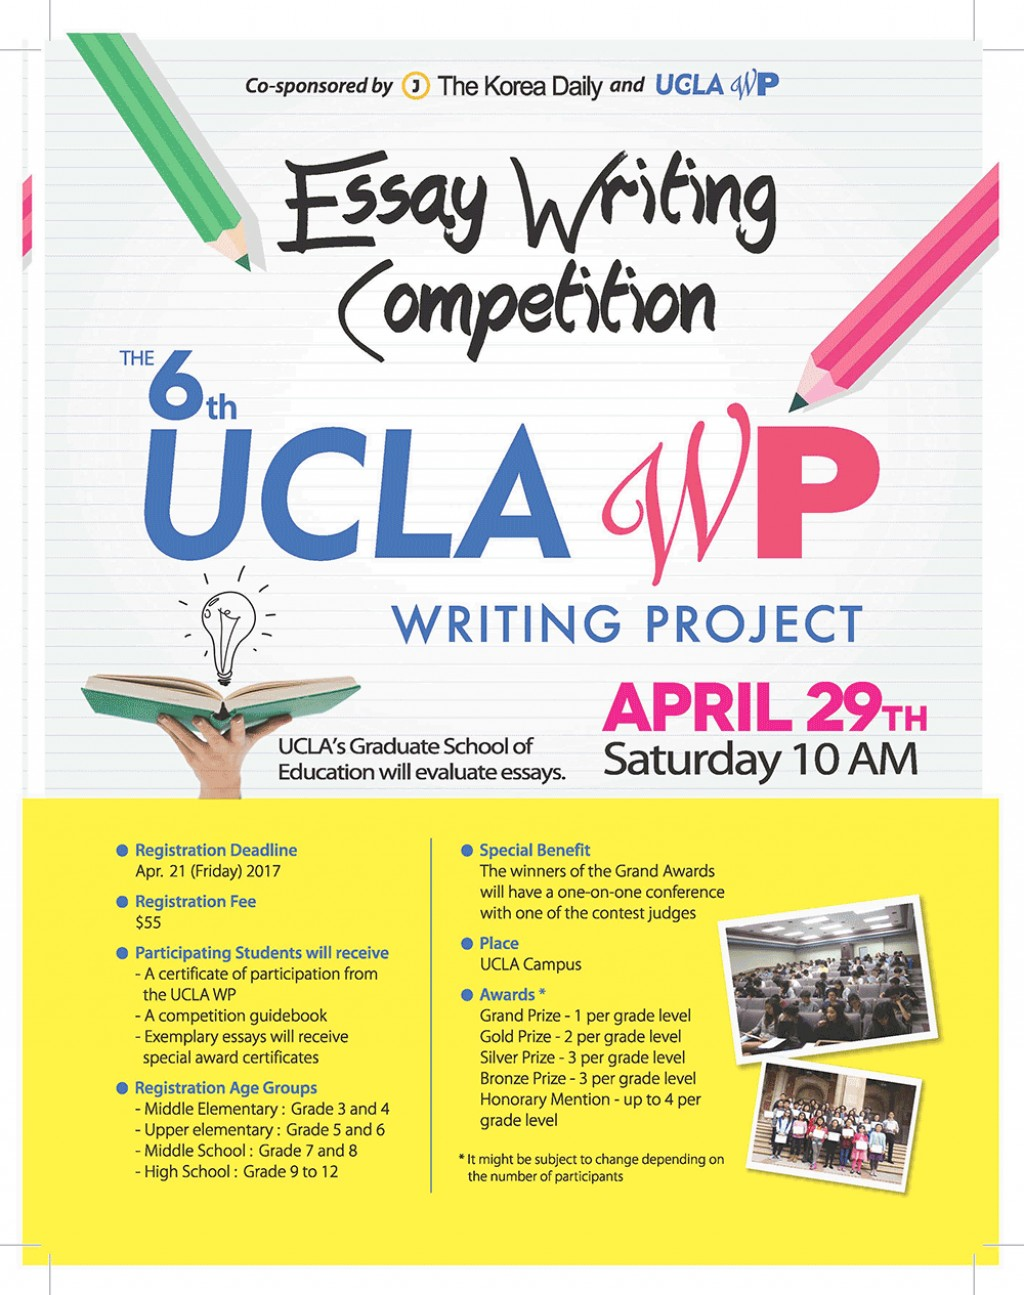 008 Essay Writing Contest Example Uclakoreandaily Incredible International Competitions For High School Students Rules By Essayhub Large